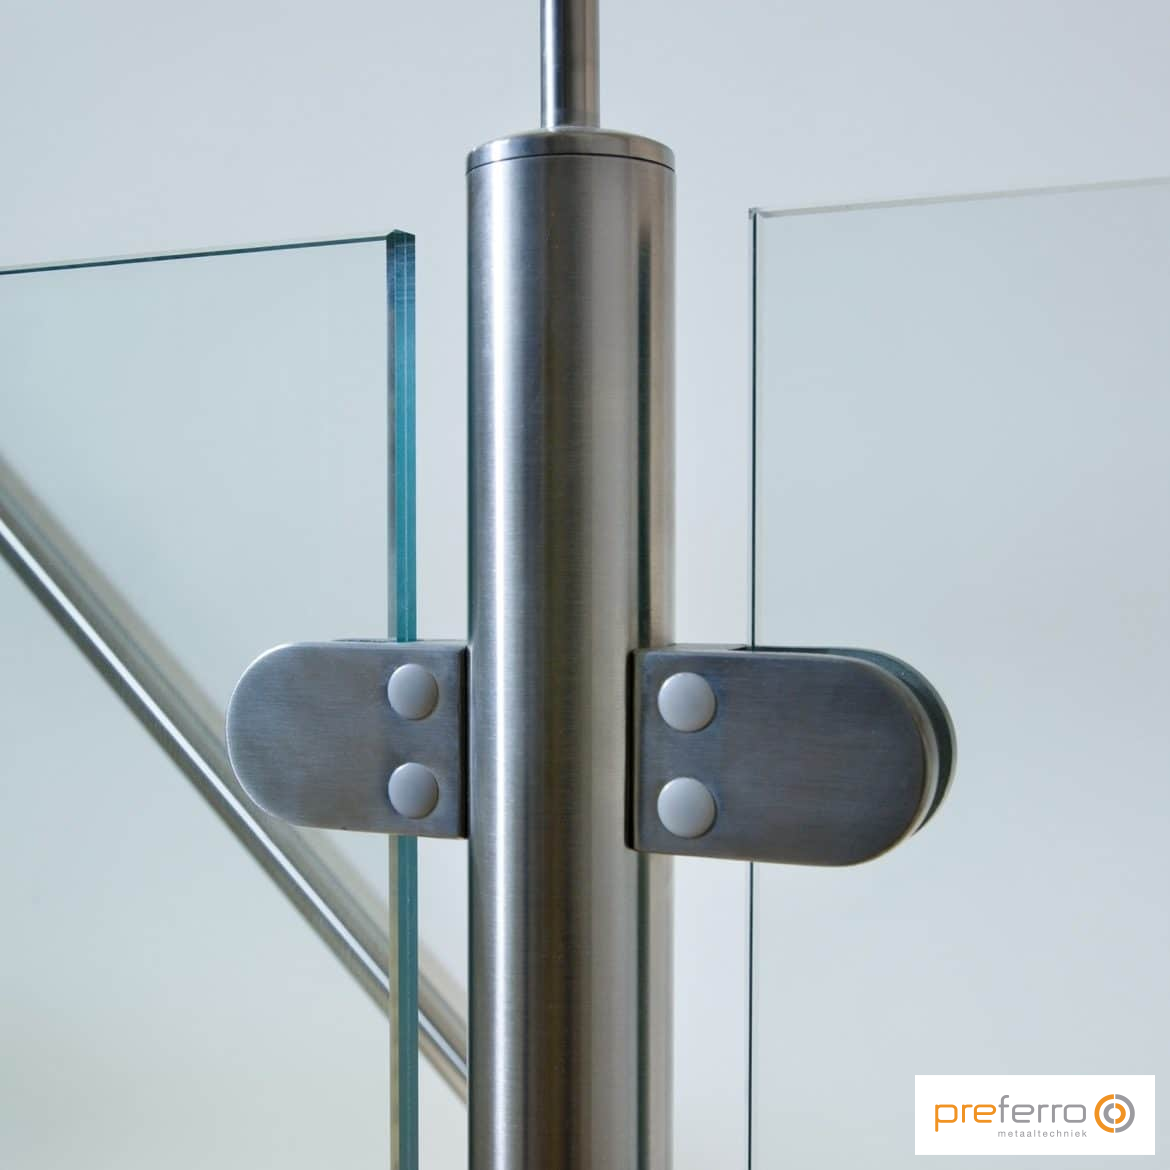 RVS balustrade met glas